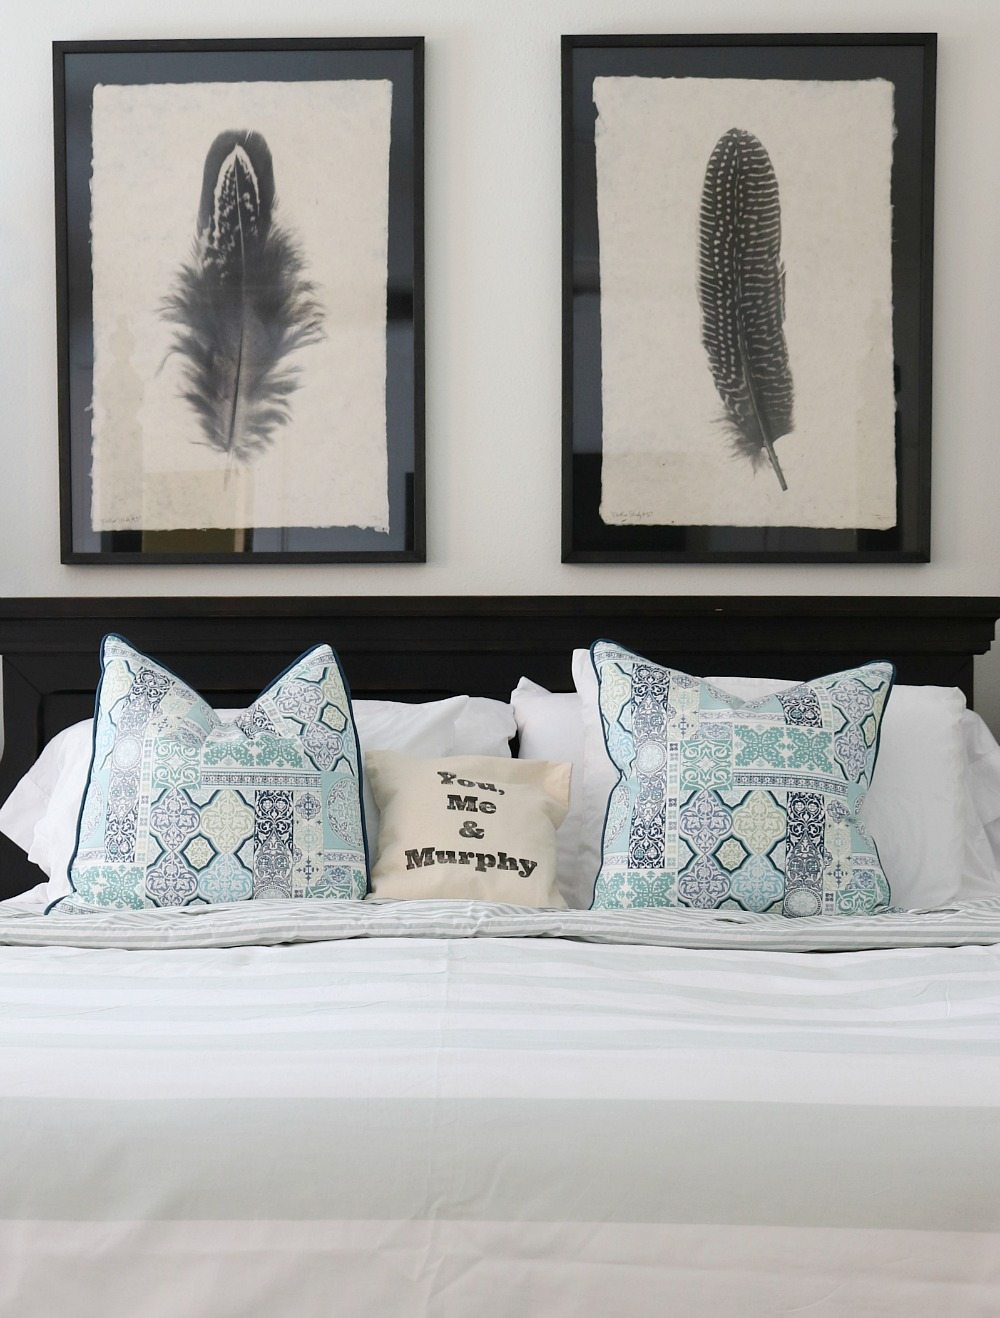 shades of blue are perfect for a cool summer bedroom